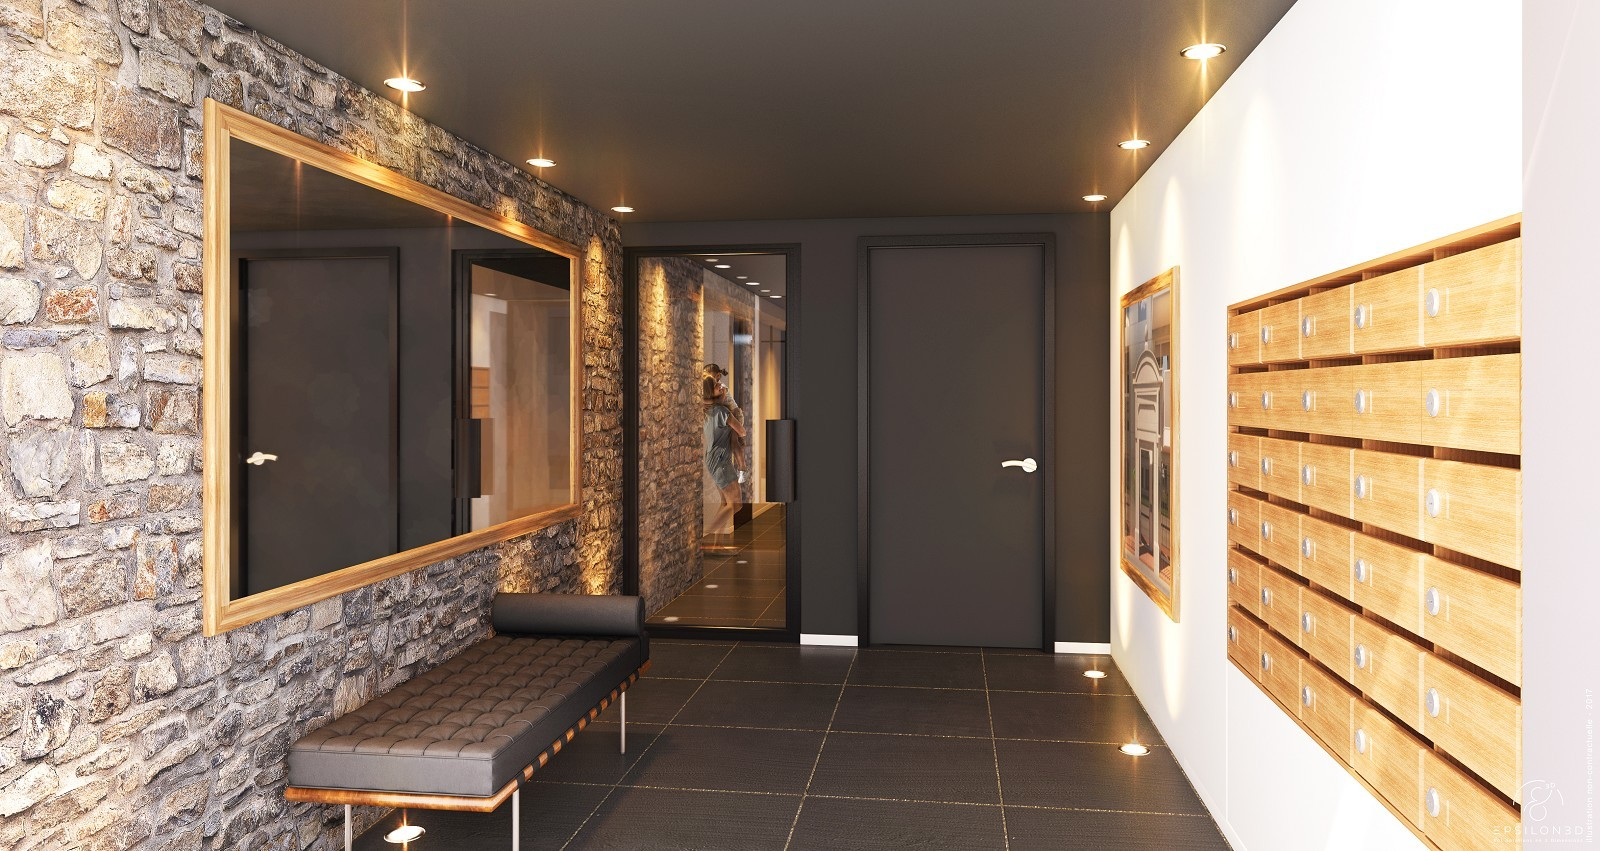 NANTES - Apartment of 59 sq.m in the heart of downtown Nantes